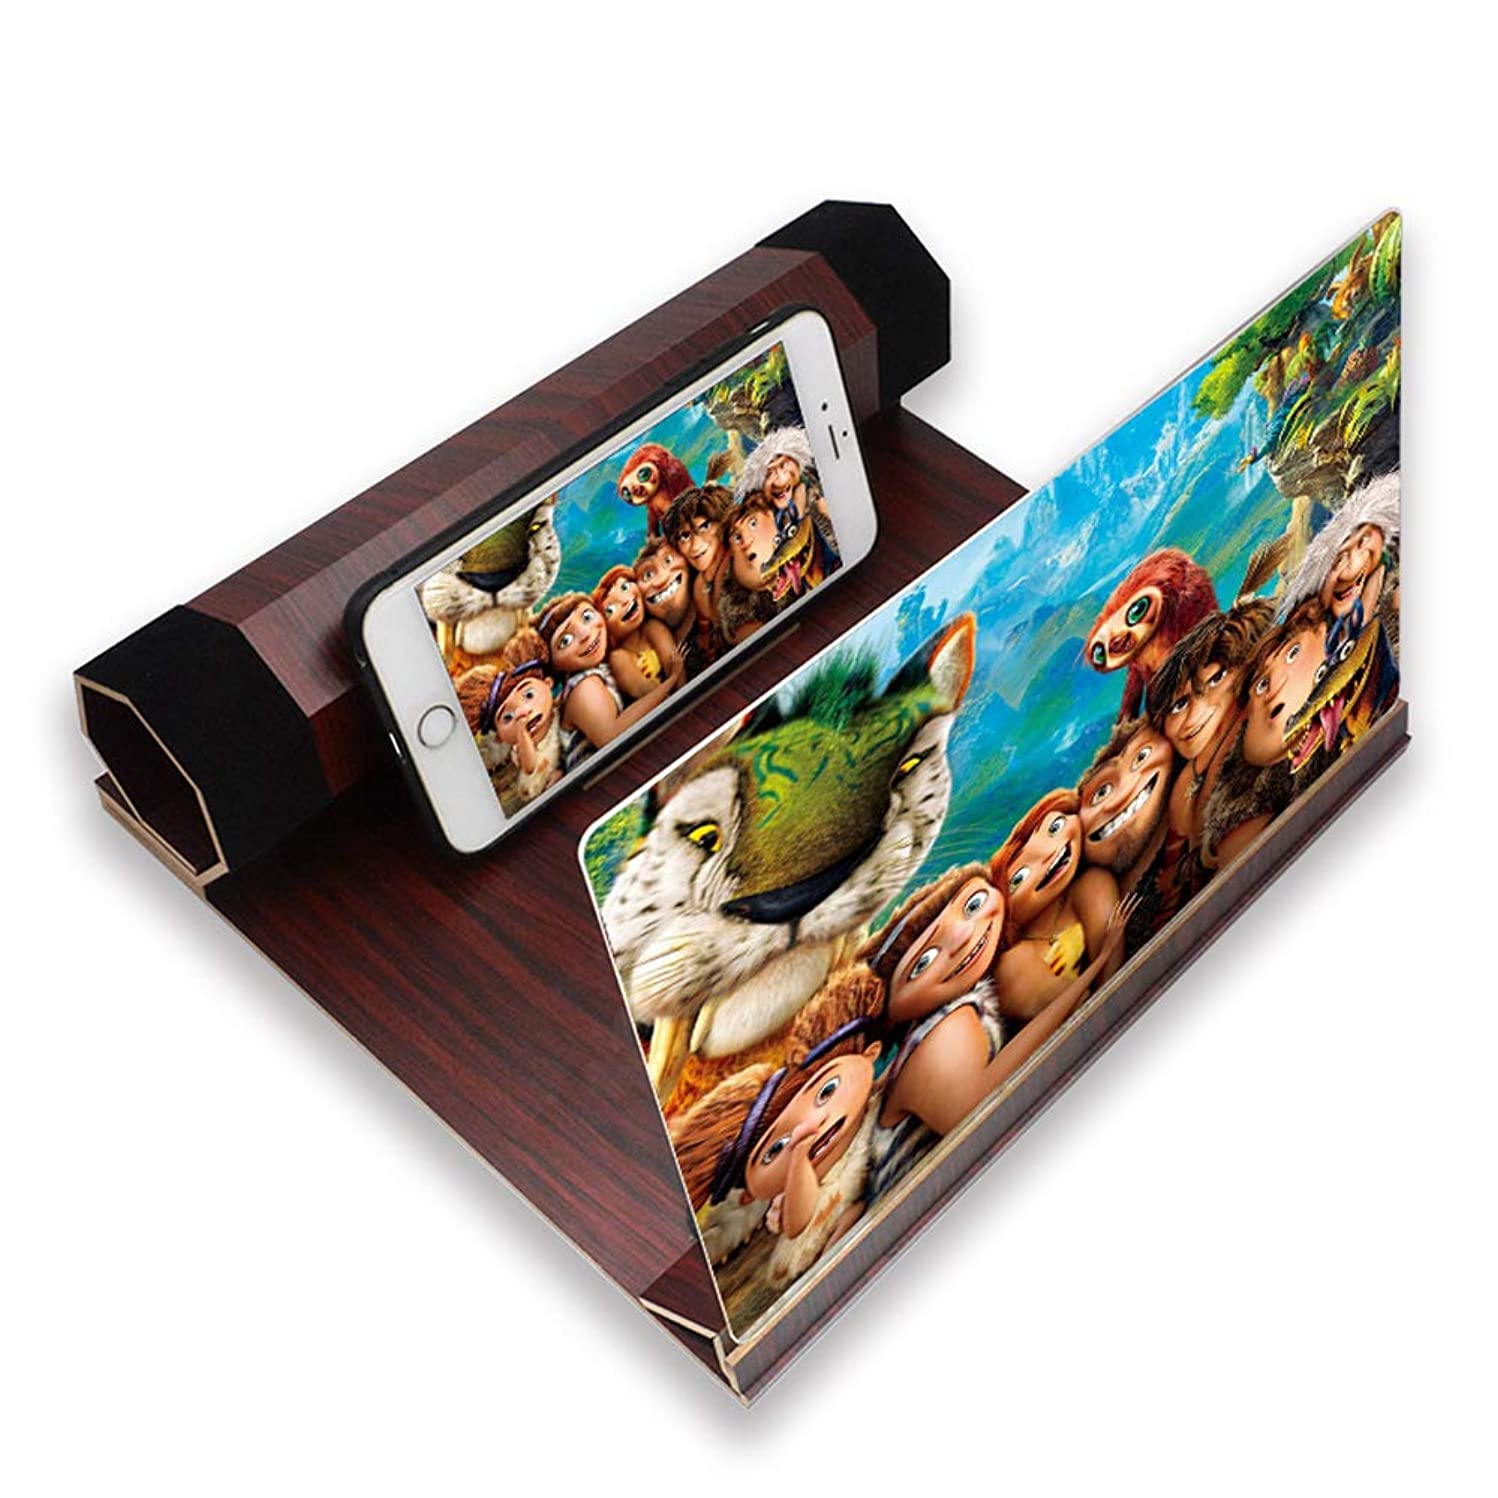 Mobile Phone Screen Amplifier, 3D Mobile Phone Magnifier, Portable Screen Amplifier, 12-Inch Hd Lens, Foldable Solid Wood Bracket Free Hands, Match All Mobile Phone Models